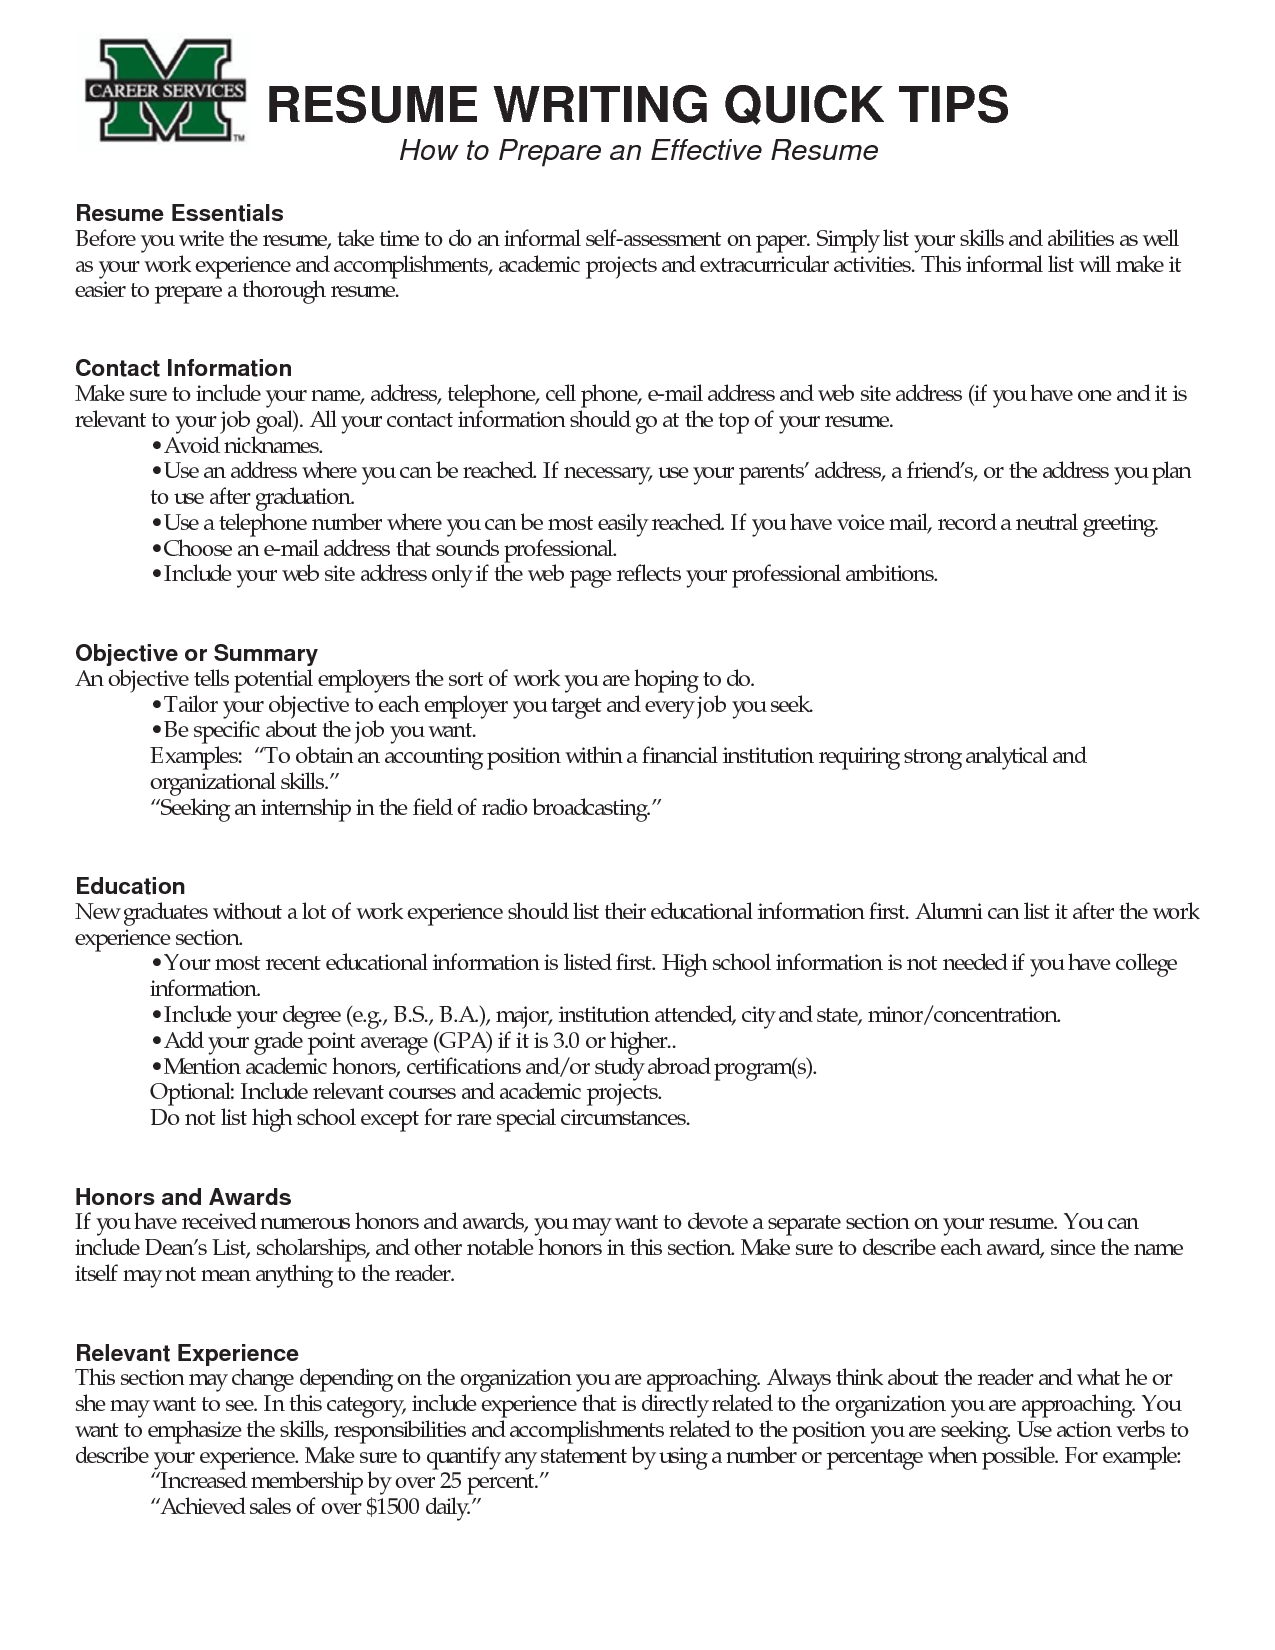 Tips Effective Resume Writing LoseyourloveWriting A Resume